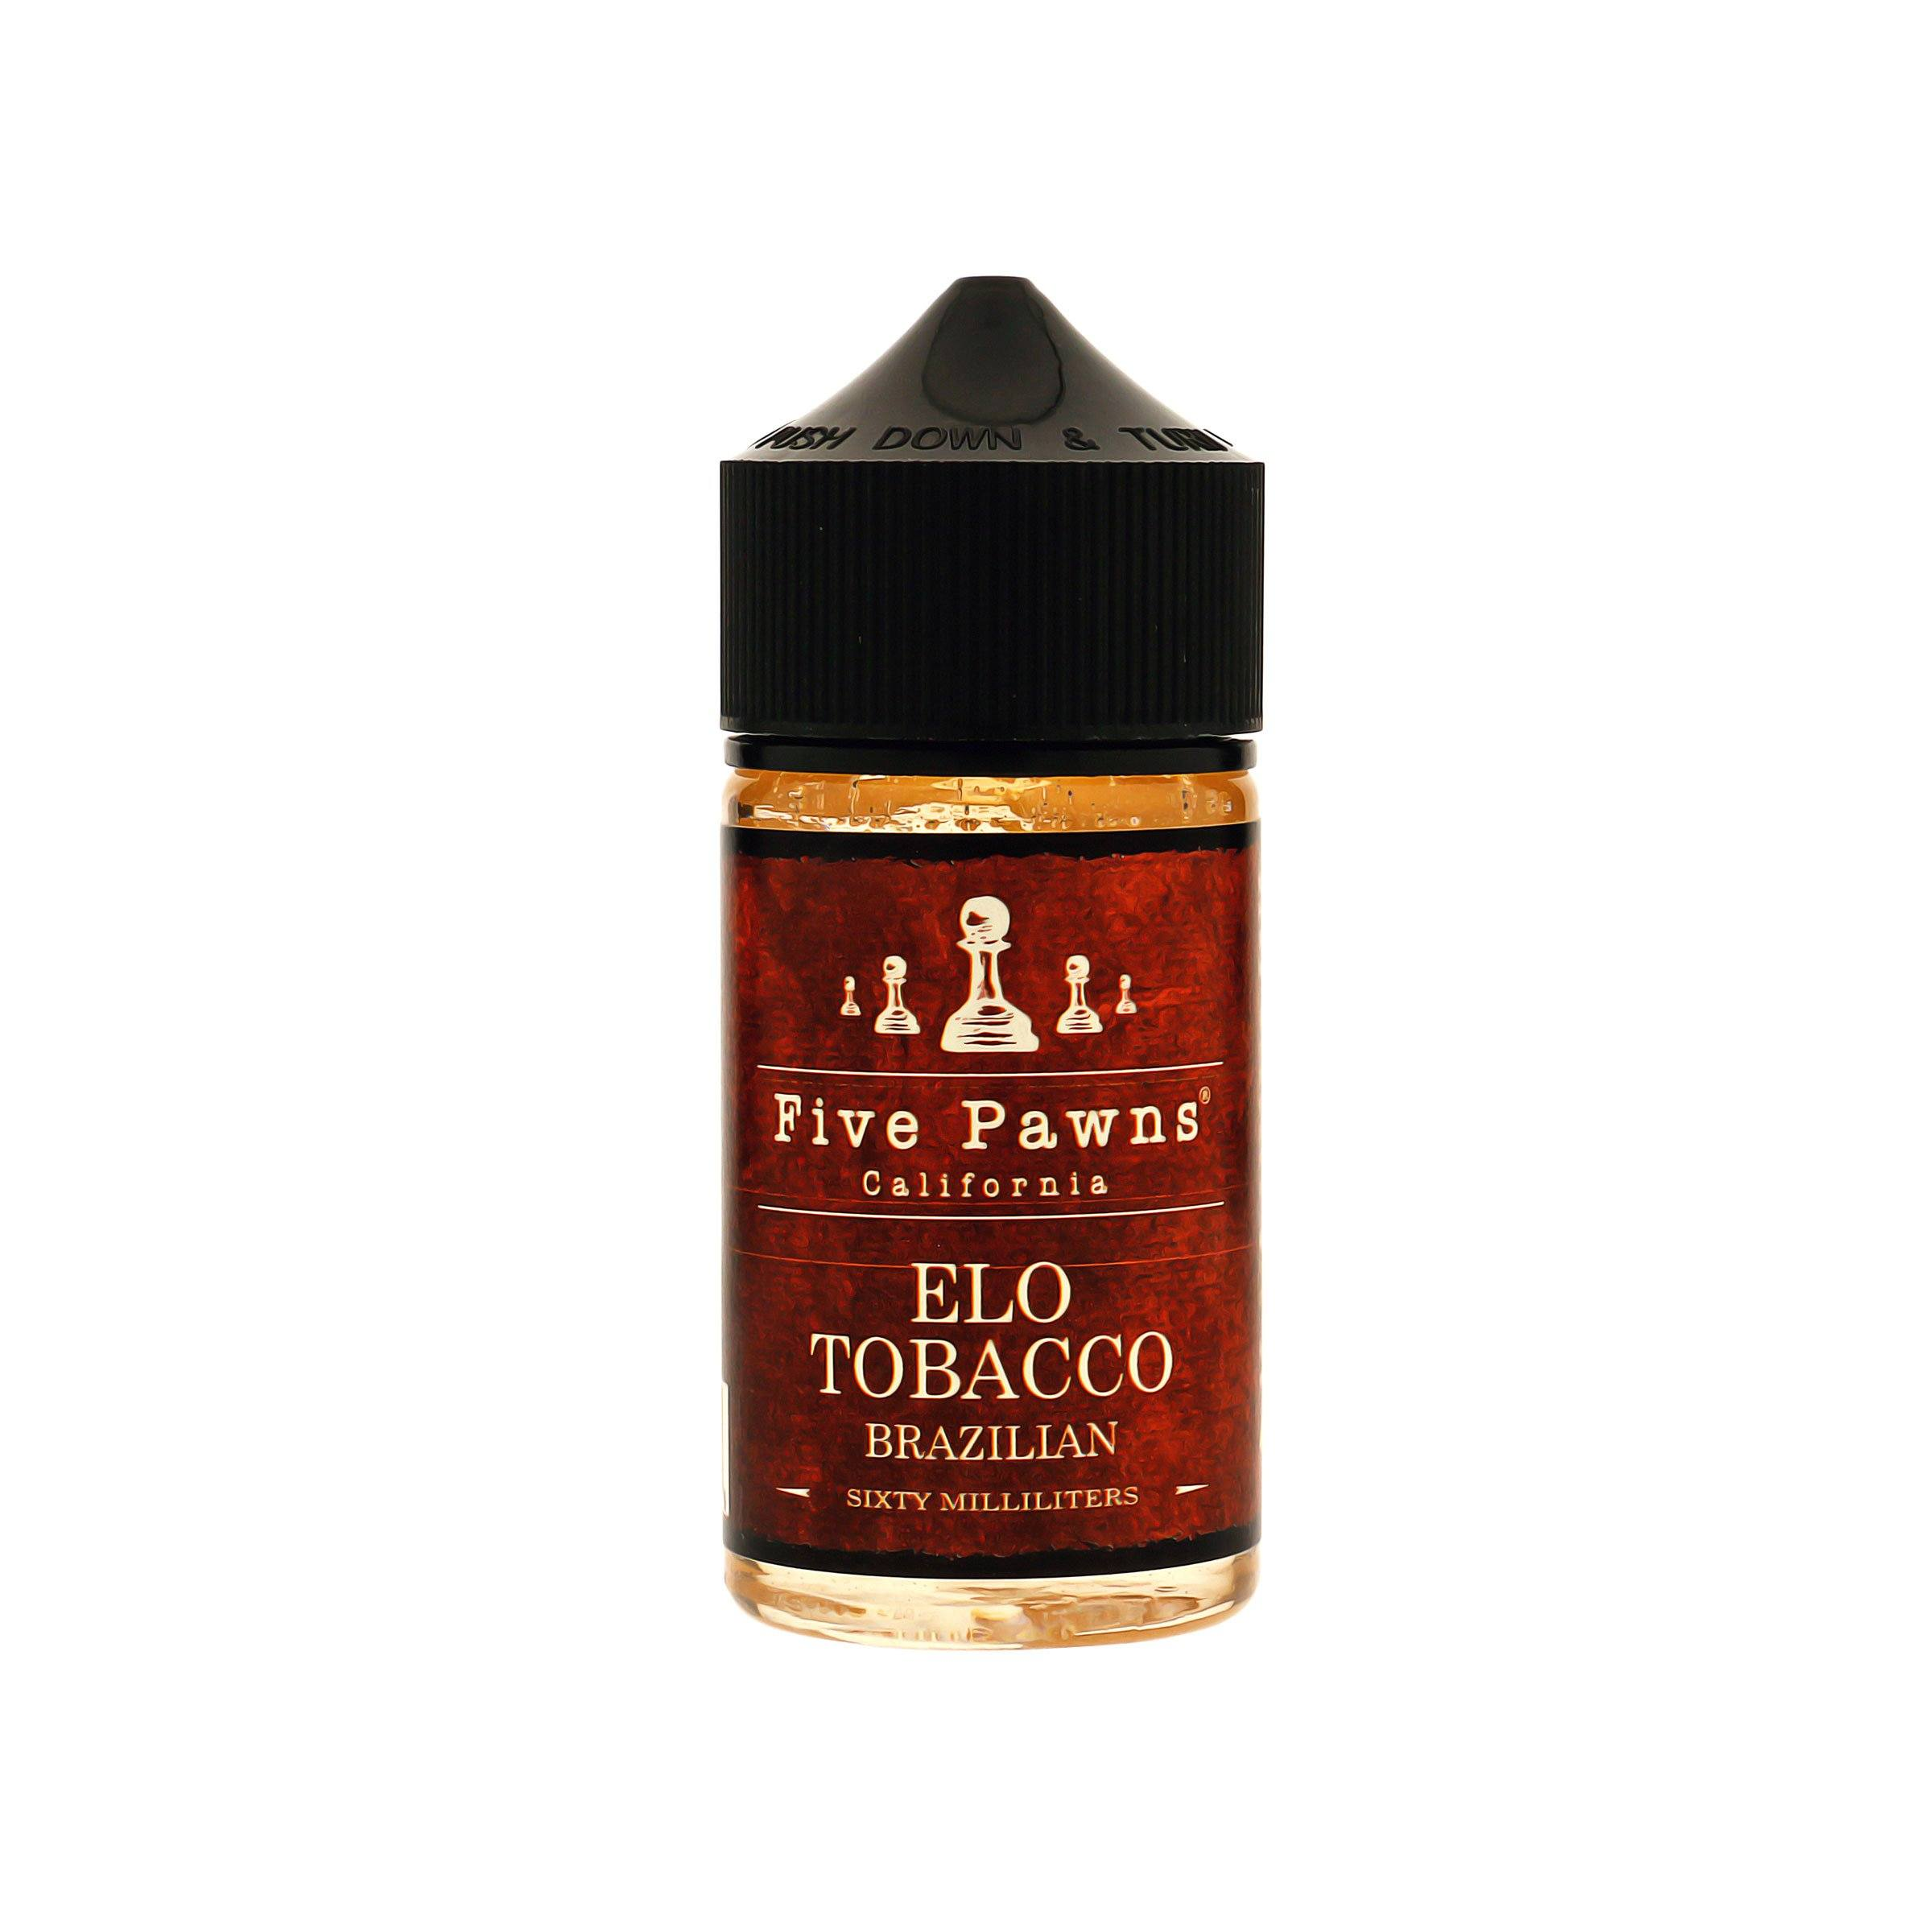 Elo Tobacco E-Juice by Five Pawns